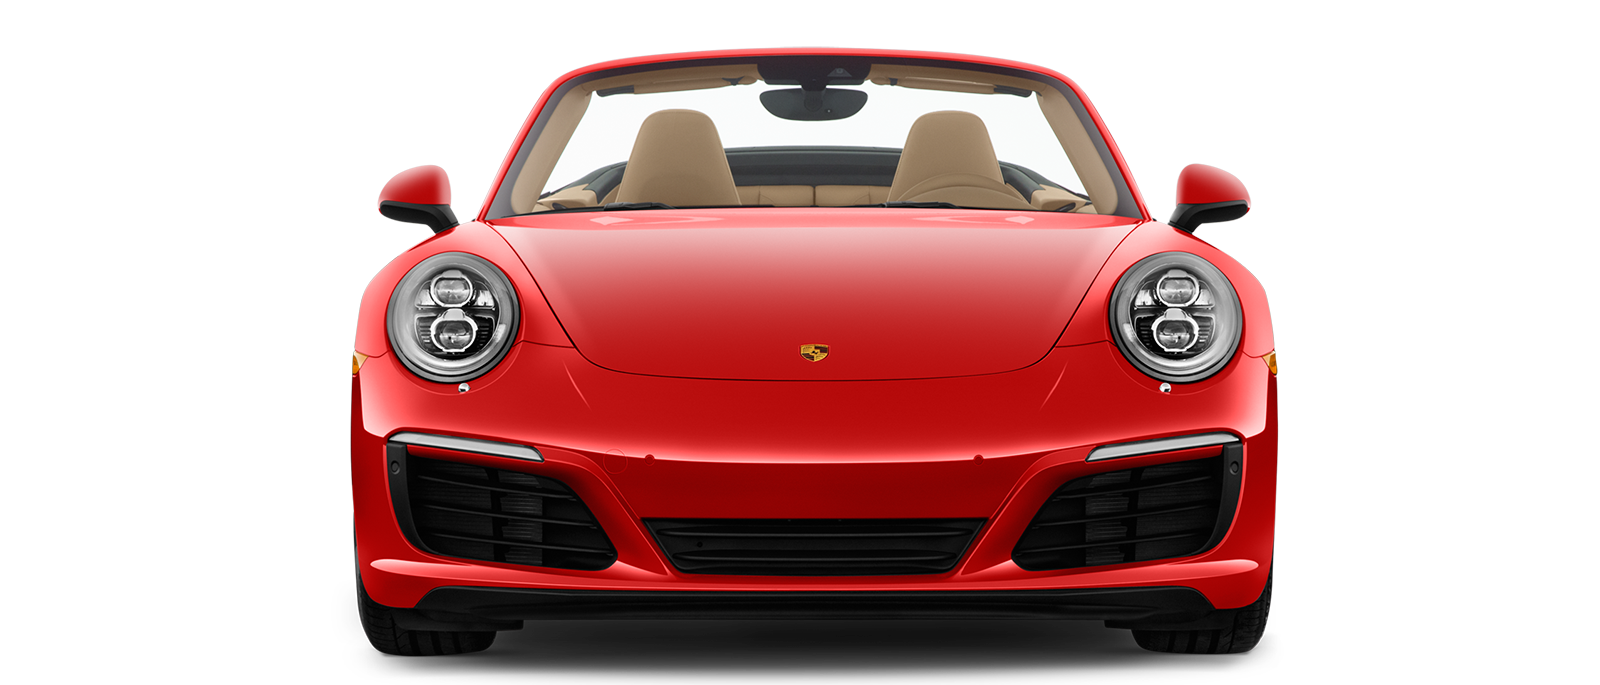 Porsche 911 Cabriolet Car Rental